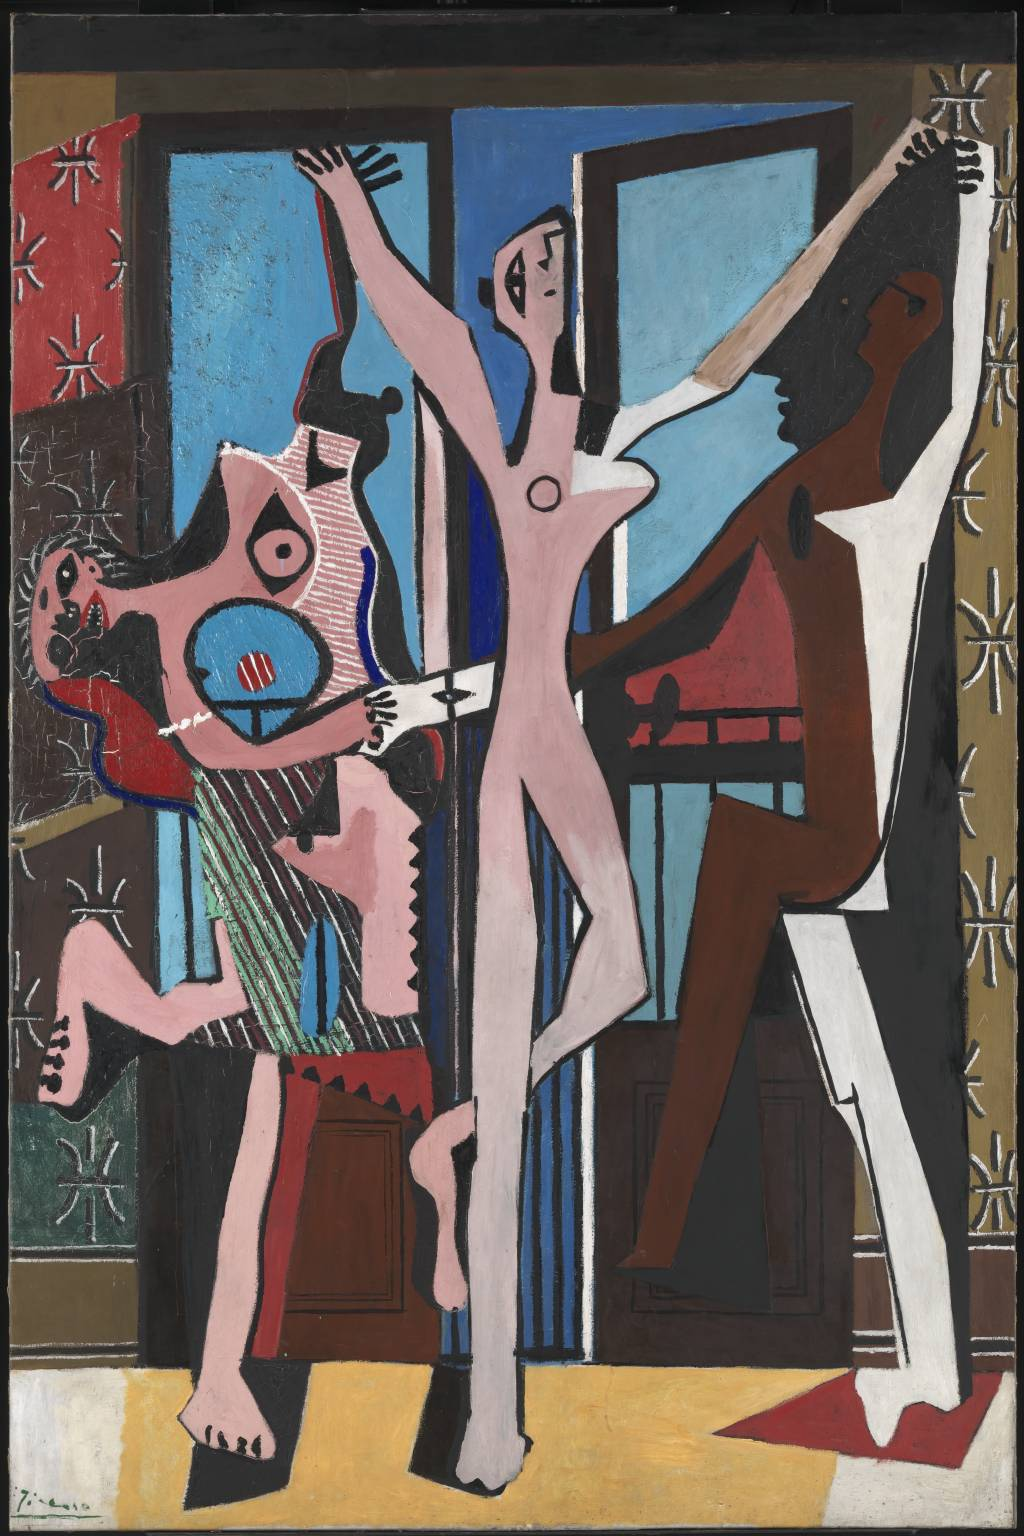 Pablo Picasso, 'The Three Dancers' 1925